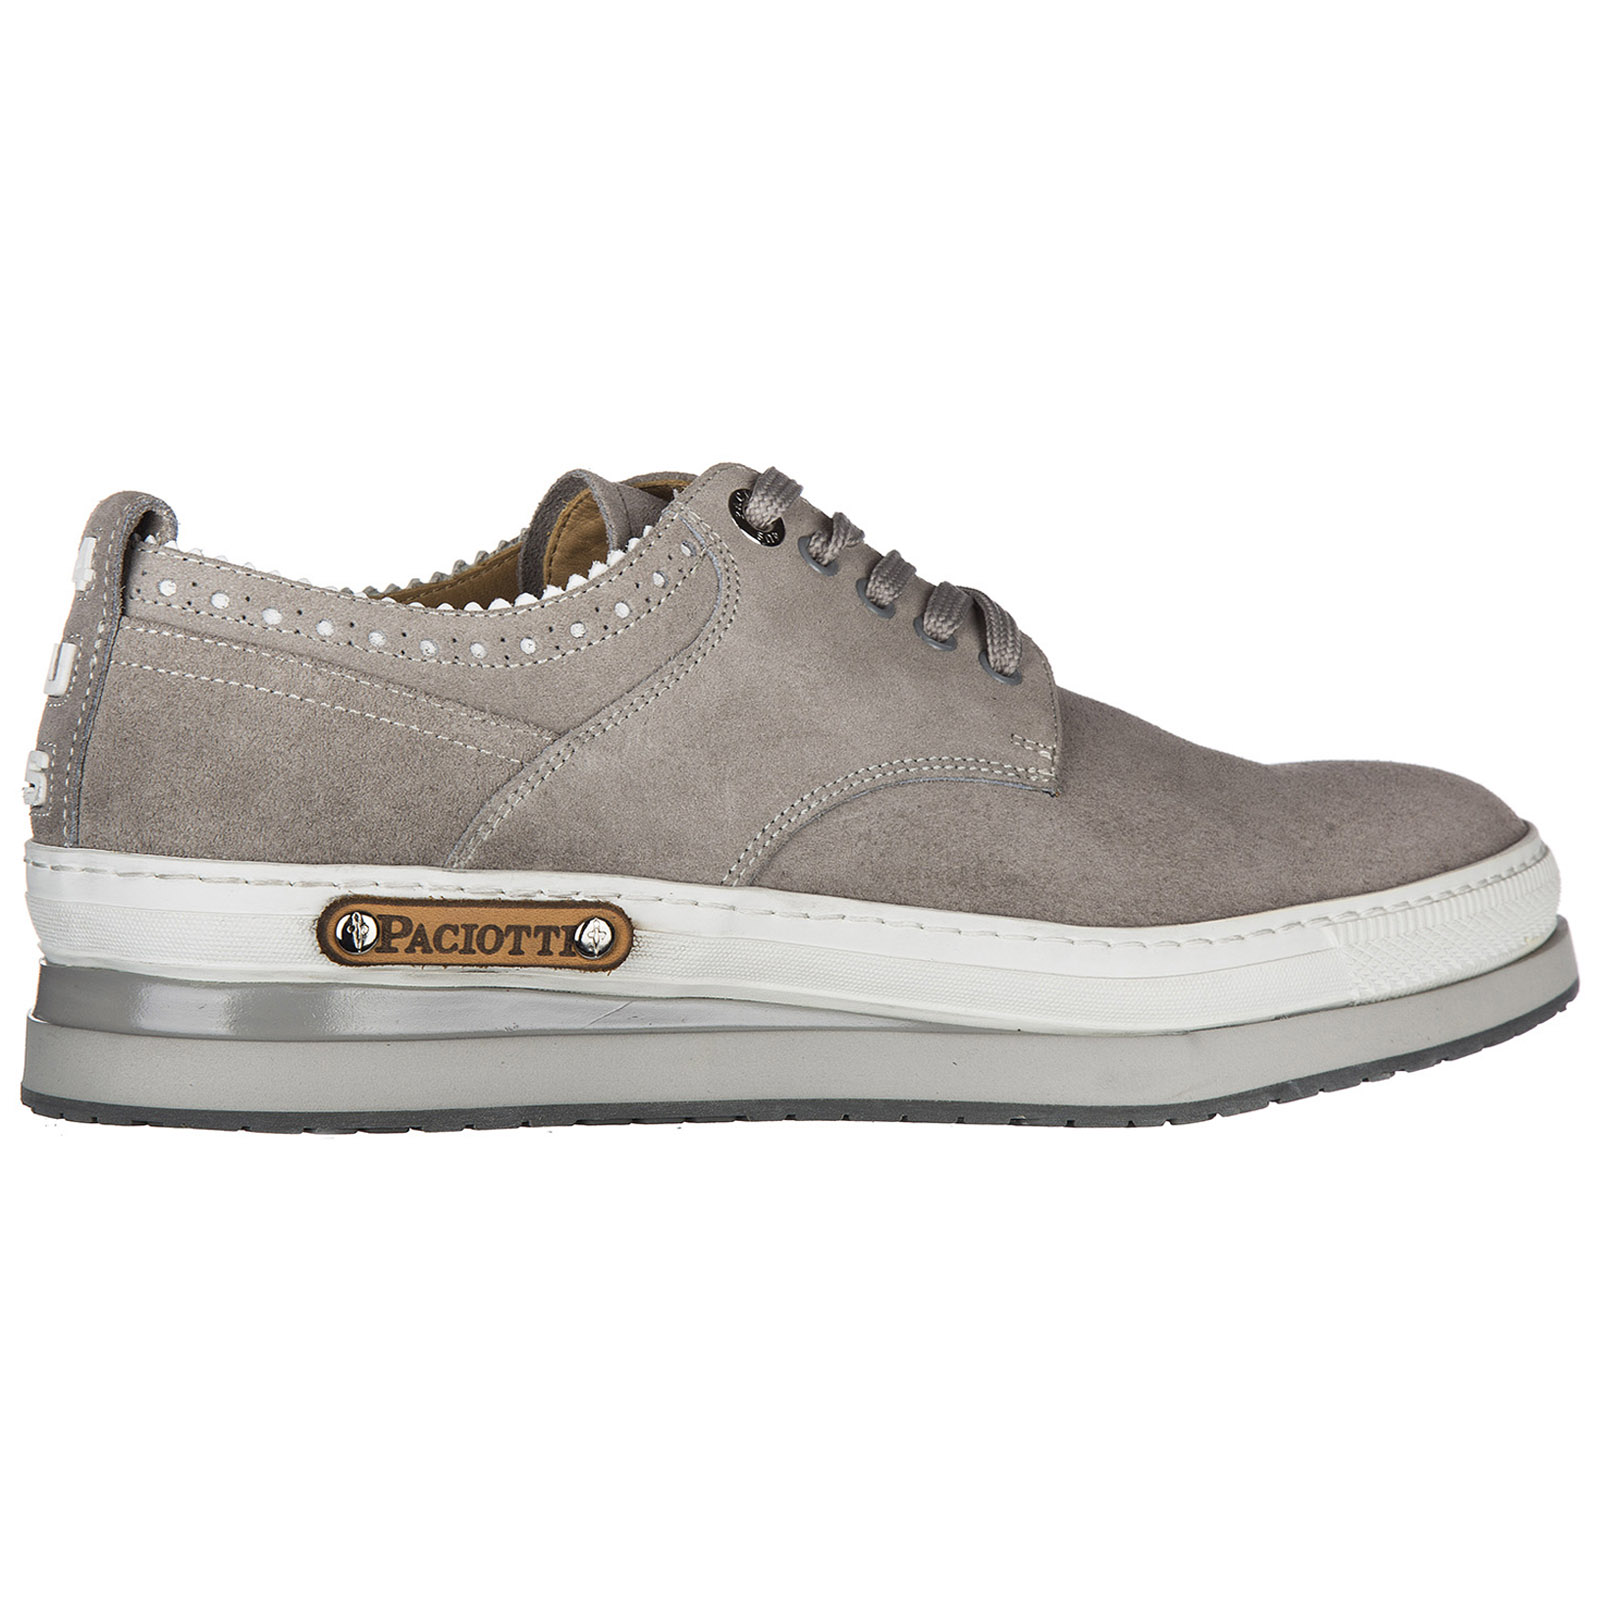 Men's shoes suede trainers sneakers cannes